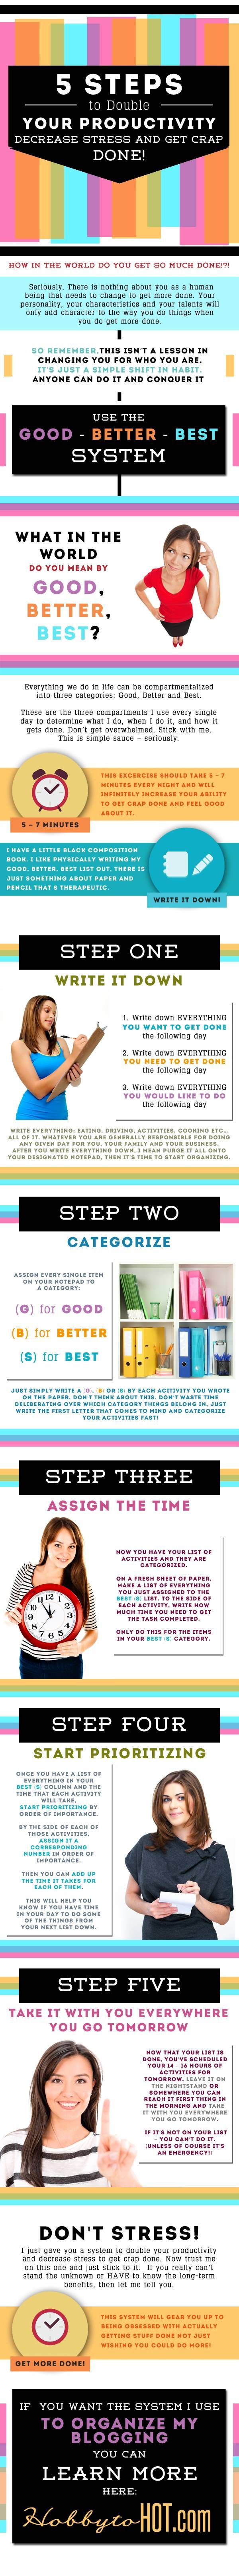 10 steps how to use stress to increase your productivity motivate - 5 Steps To Double Your Productivity Decrease Stress And Get Crap Done Infographic